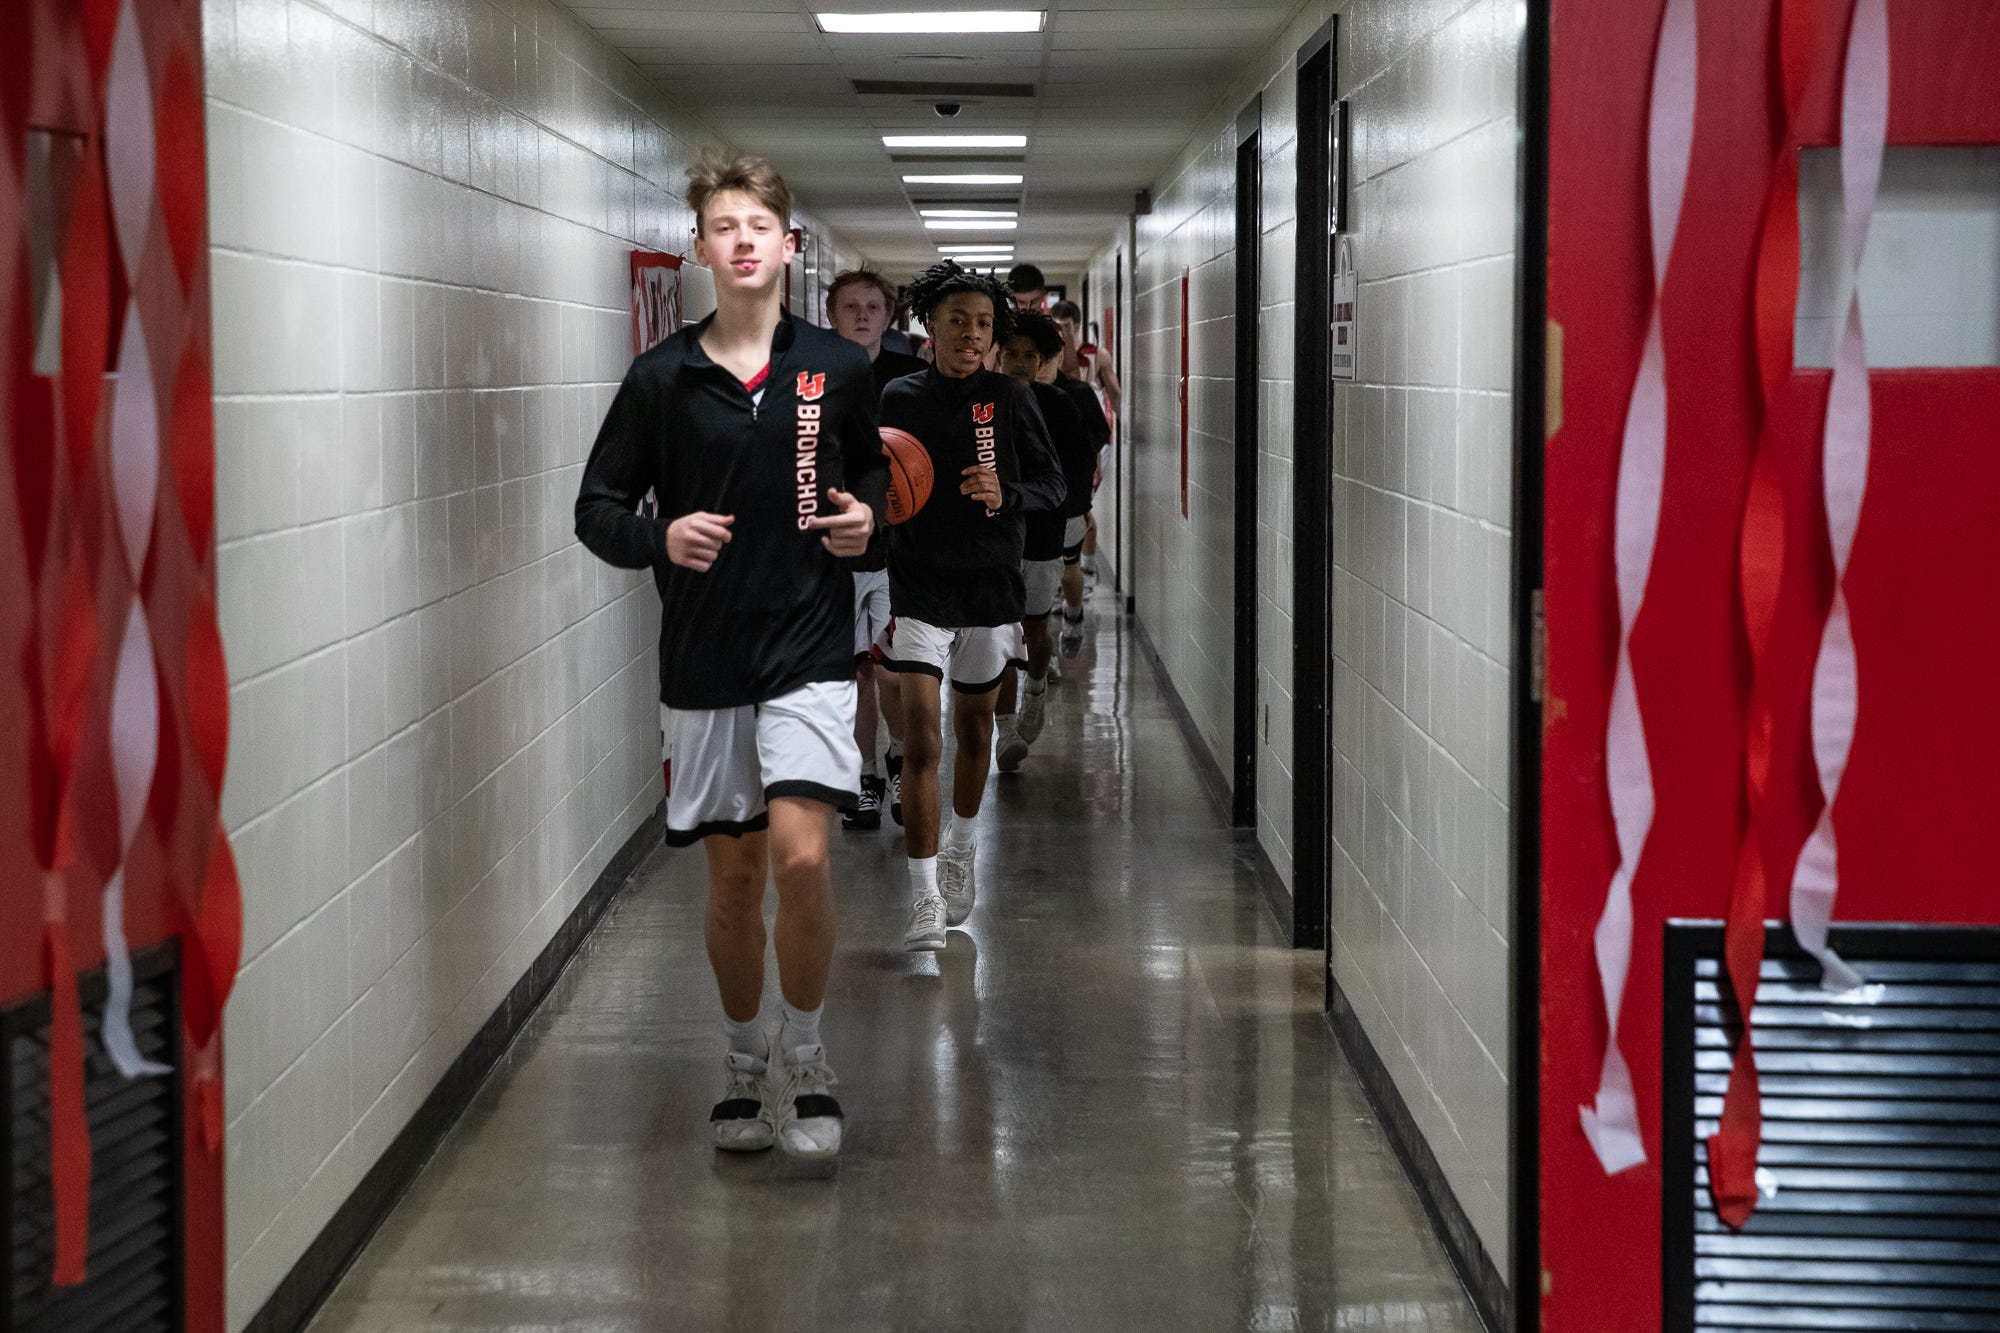 The Lafayette Jefferson Bronchos' boys basketball team heads onto the court after halftime at Jefferson High School's Marion Crawley Athletic Center on Friday, Feb. 21, 2020.